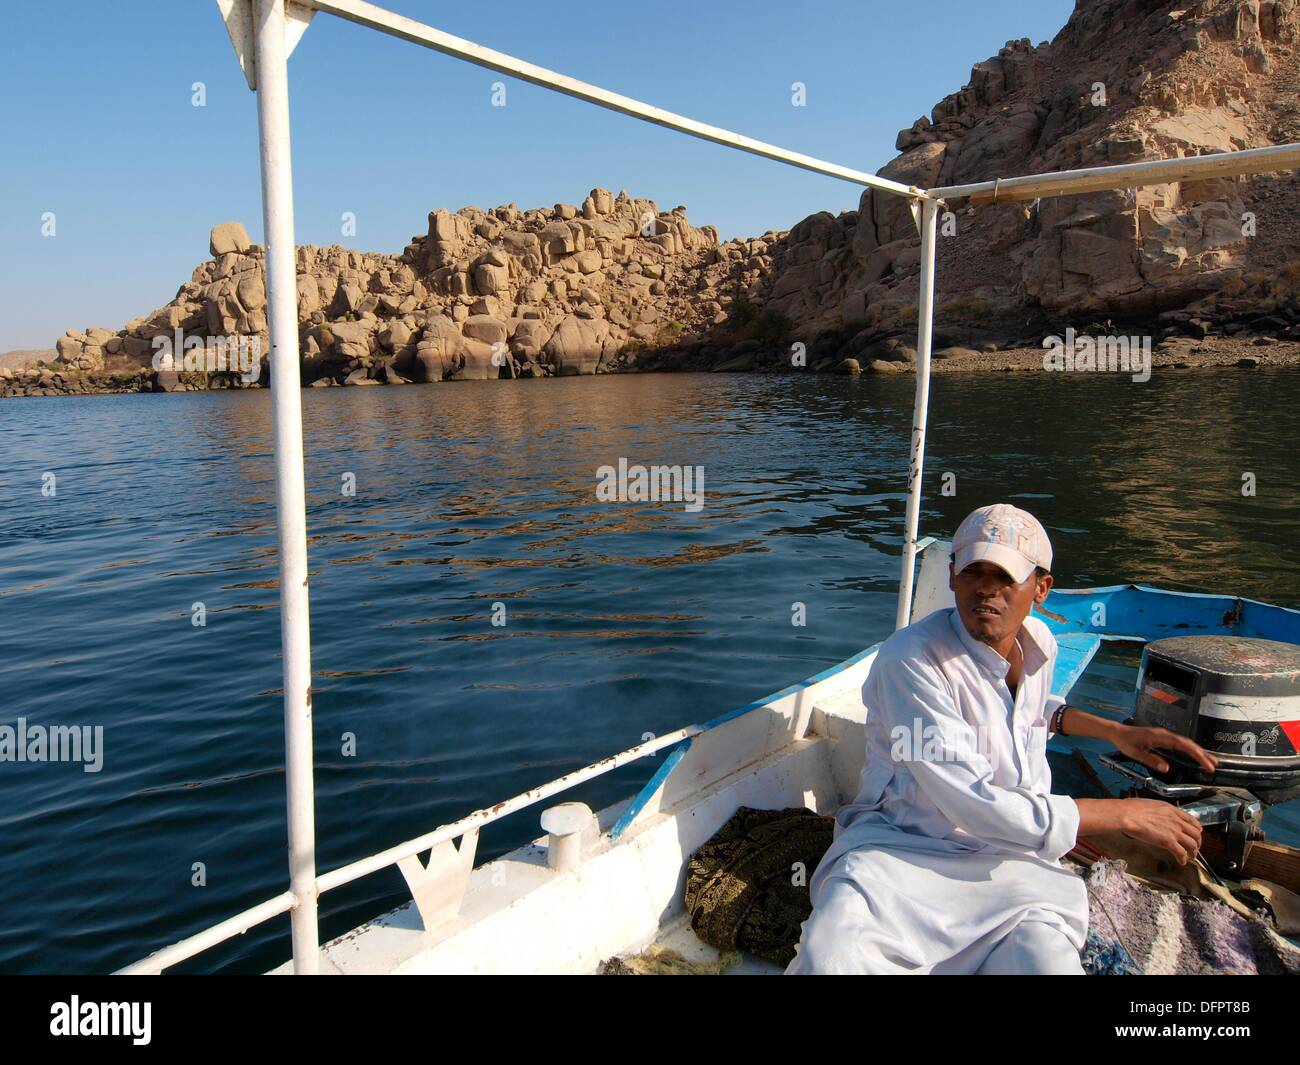 Nile river  Upper Egypt - Stock Image